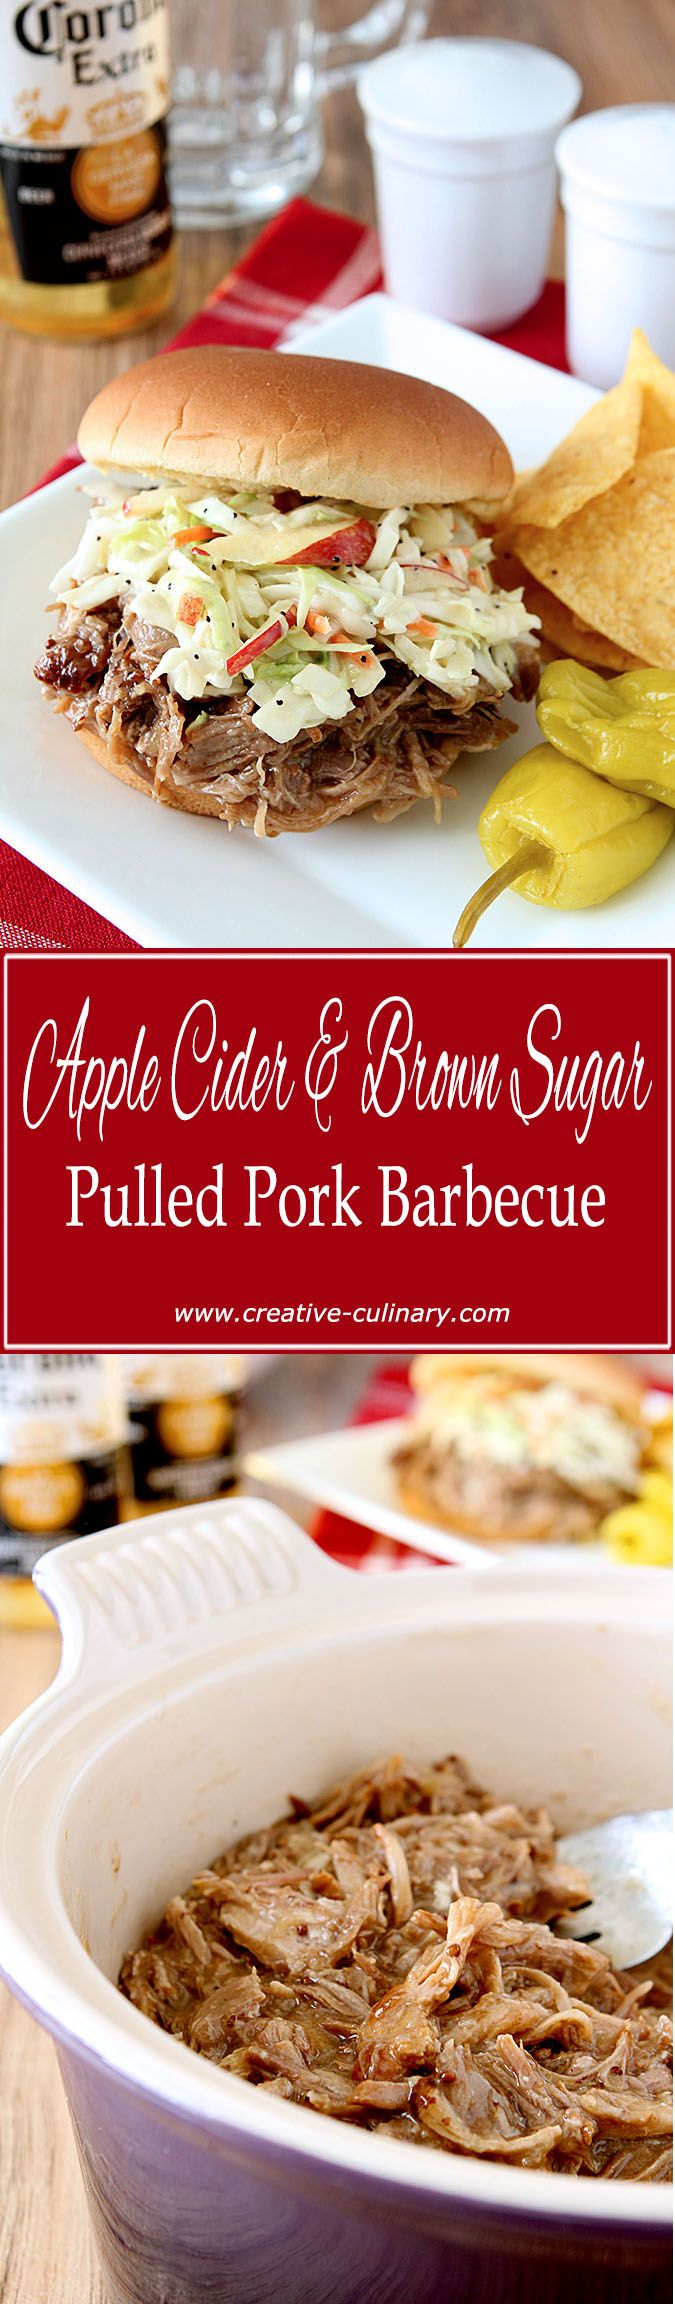 The perfect barbecue pork sandwich includes this Apple Cider and Brown Sugar Pulled Pork Barbecue! via @creativculinary